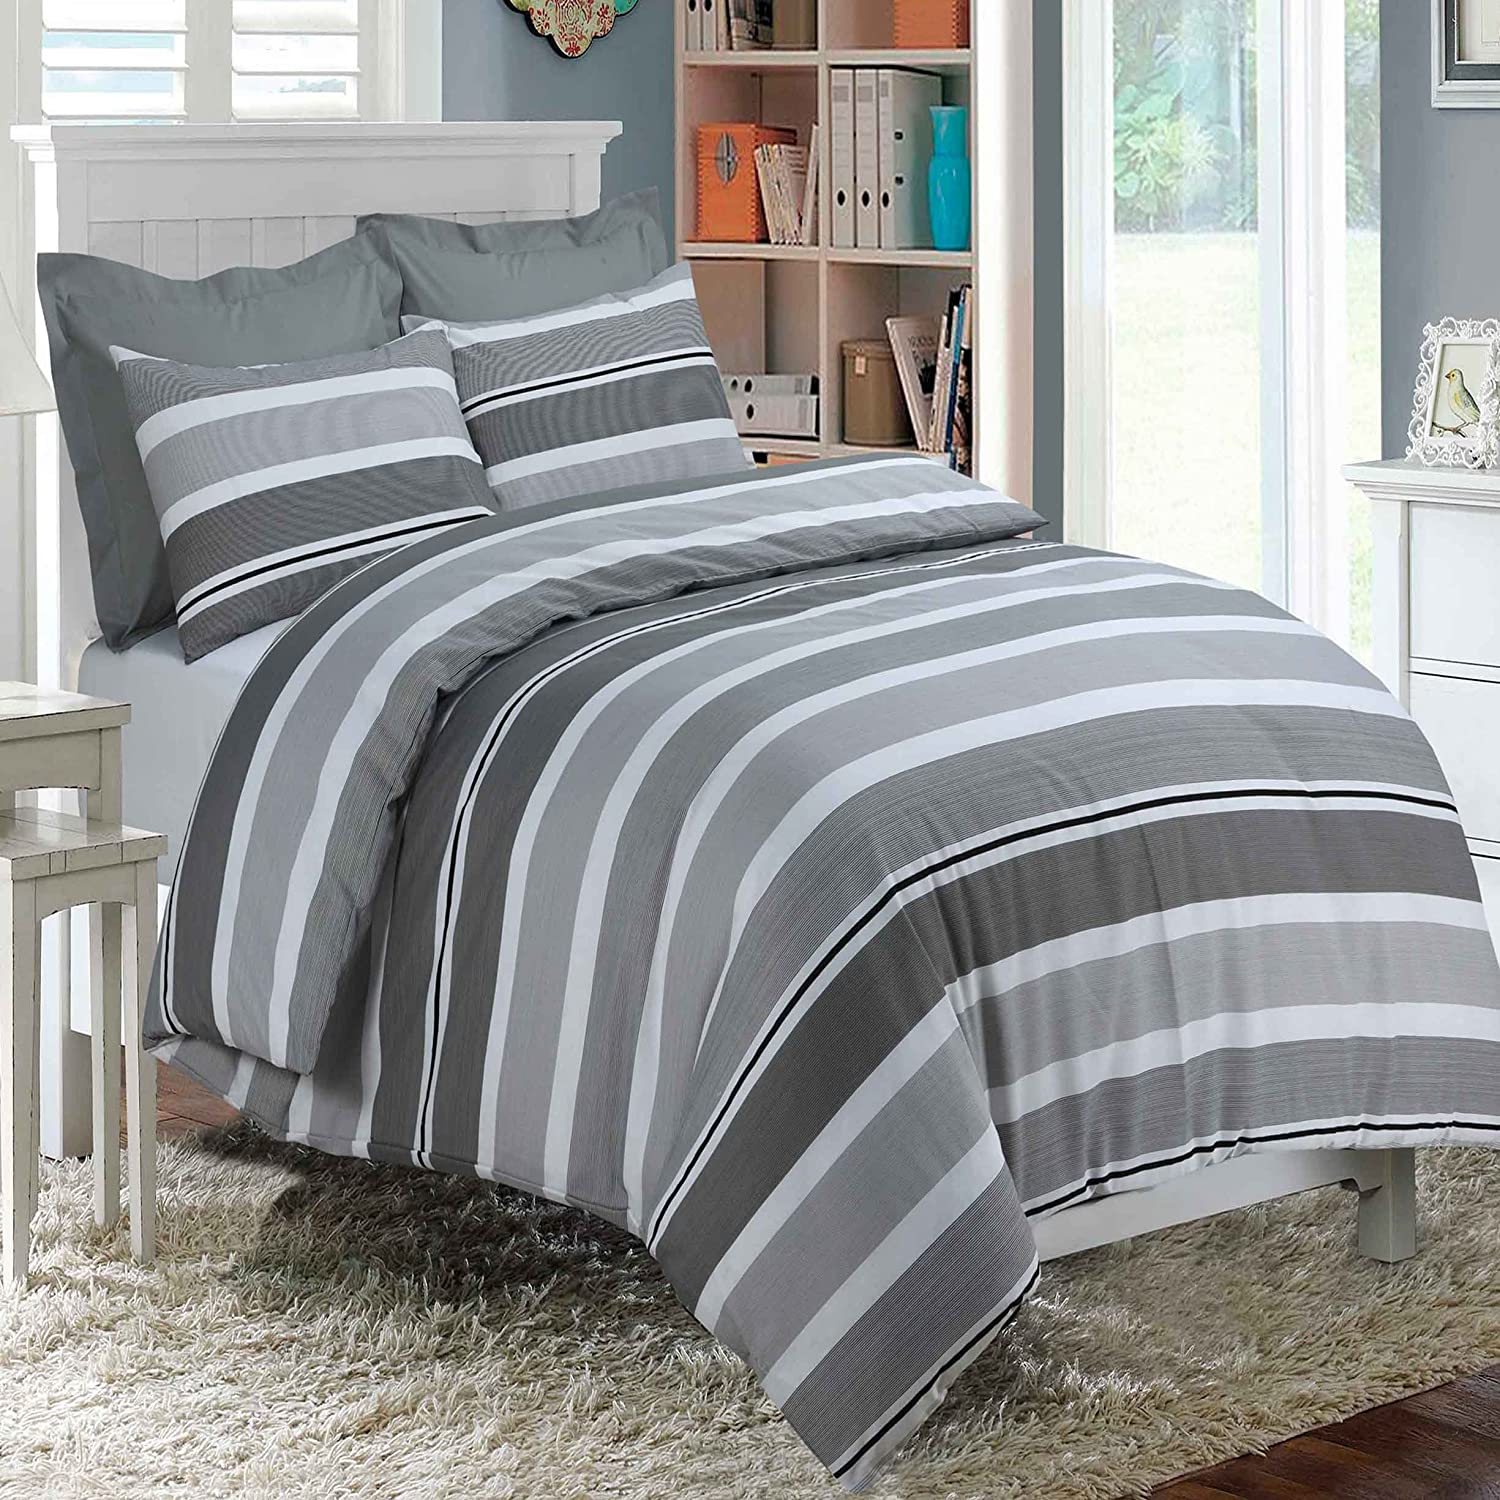 Banded Stripe Grey Duvet Cover With Pillowcases Quilt Cover Bedding Set All Size